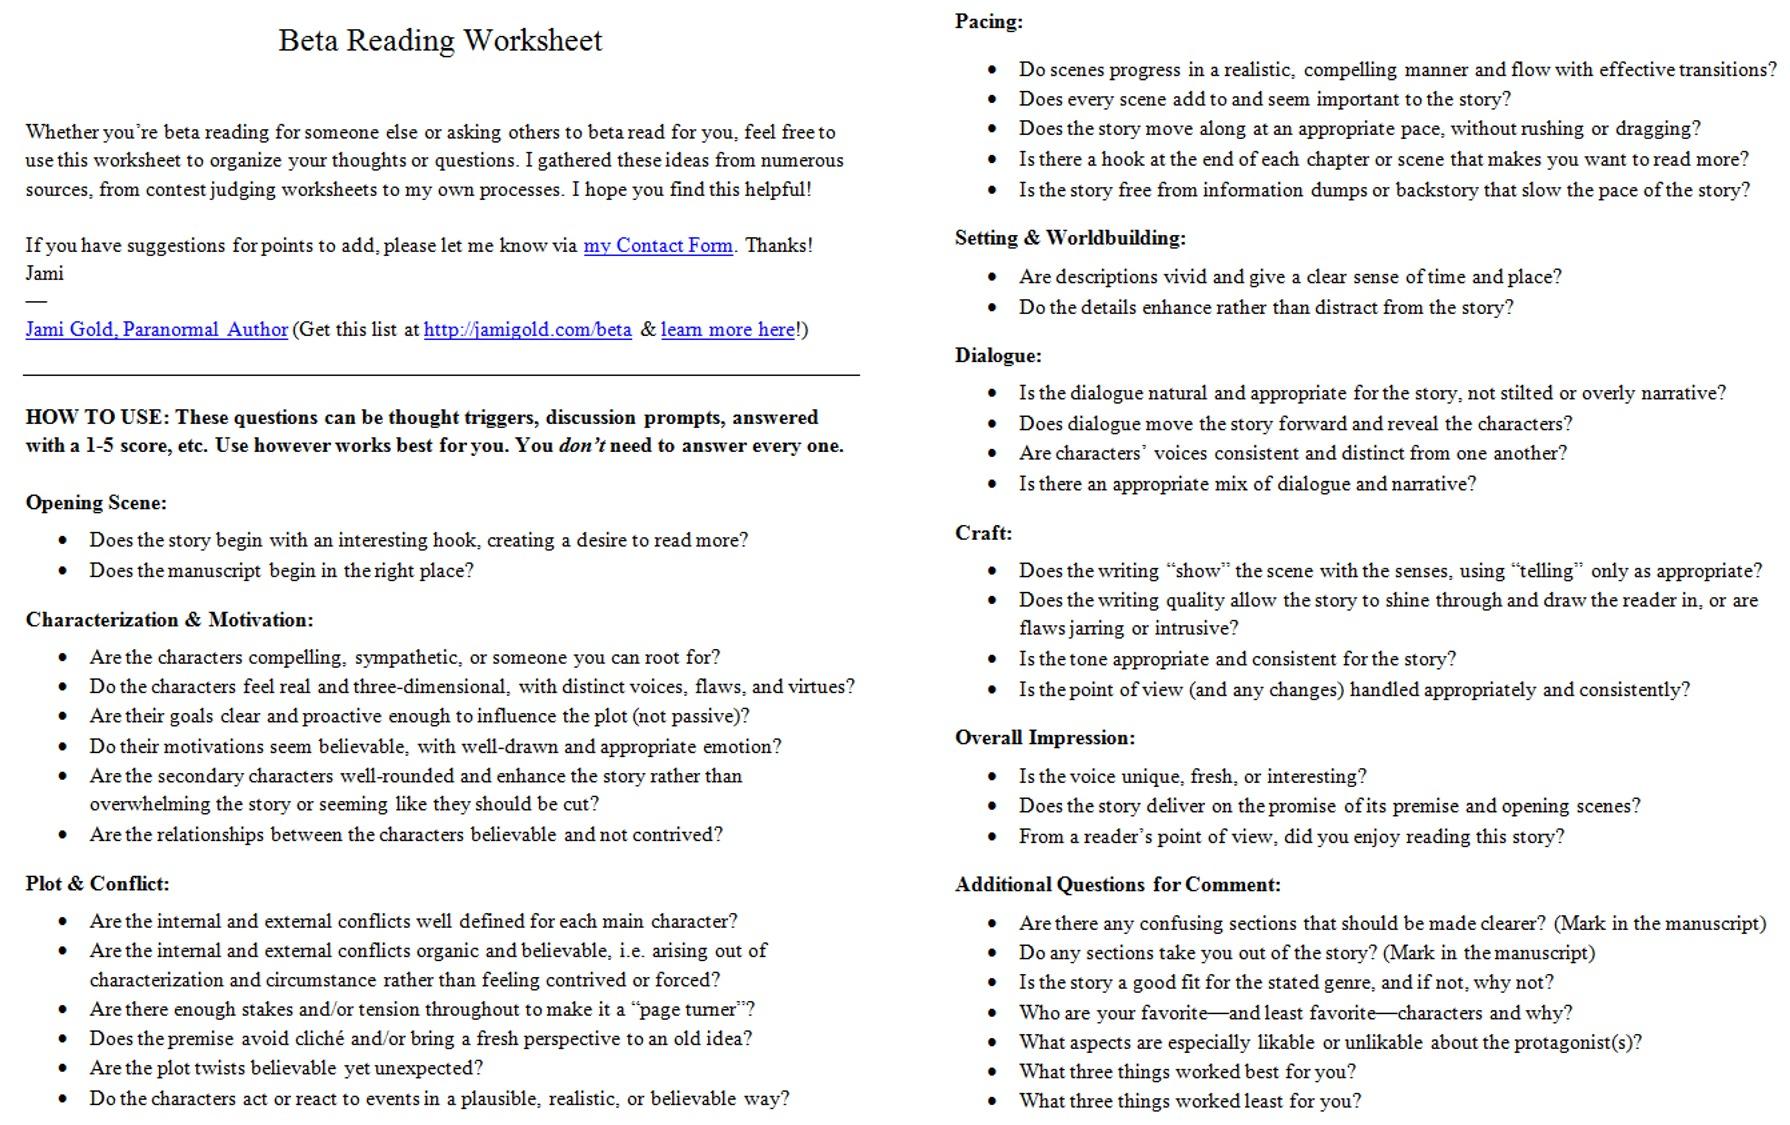 Weirdmailus  Marvelous Worksheets For Writers  Jami Gold Paranormal Author With Fascinating Screen Shot Of The Twopage Beta Reading Worksheet With Delectable Kidzone Math Worksheets Also Worksheets To Print In Addition Profit Loss Statement Worksheet And Or Aw Au Worksheets As Well As Solubility Product Worksheet Answers Additionally Worksheet On Abstract Nouns For Grade  From Jamigoldcom With Weirdmailus  Fascinating Worksheets For Writers  Jami Gold Paranormal Author With Delectable Screen Shot Of The Twopage Beta Reading Worksheet And Marvelous Kidzone Math Worksheets Also Worksheets To Print In Addition Profit Loss Statement Worksheet From Jamigoldcom